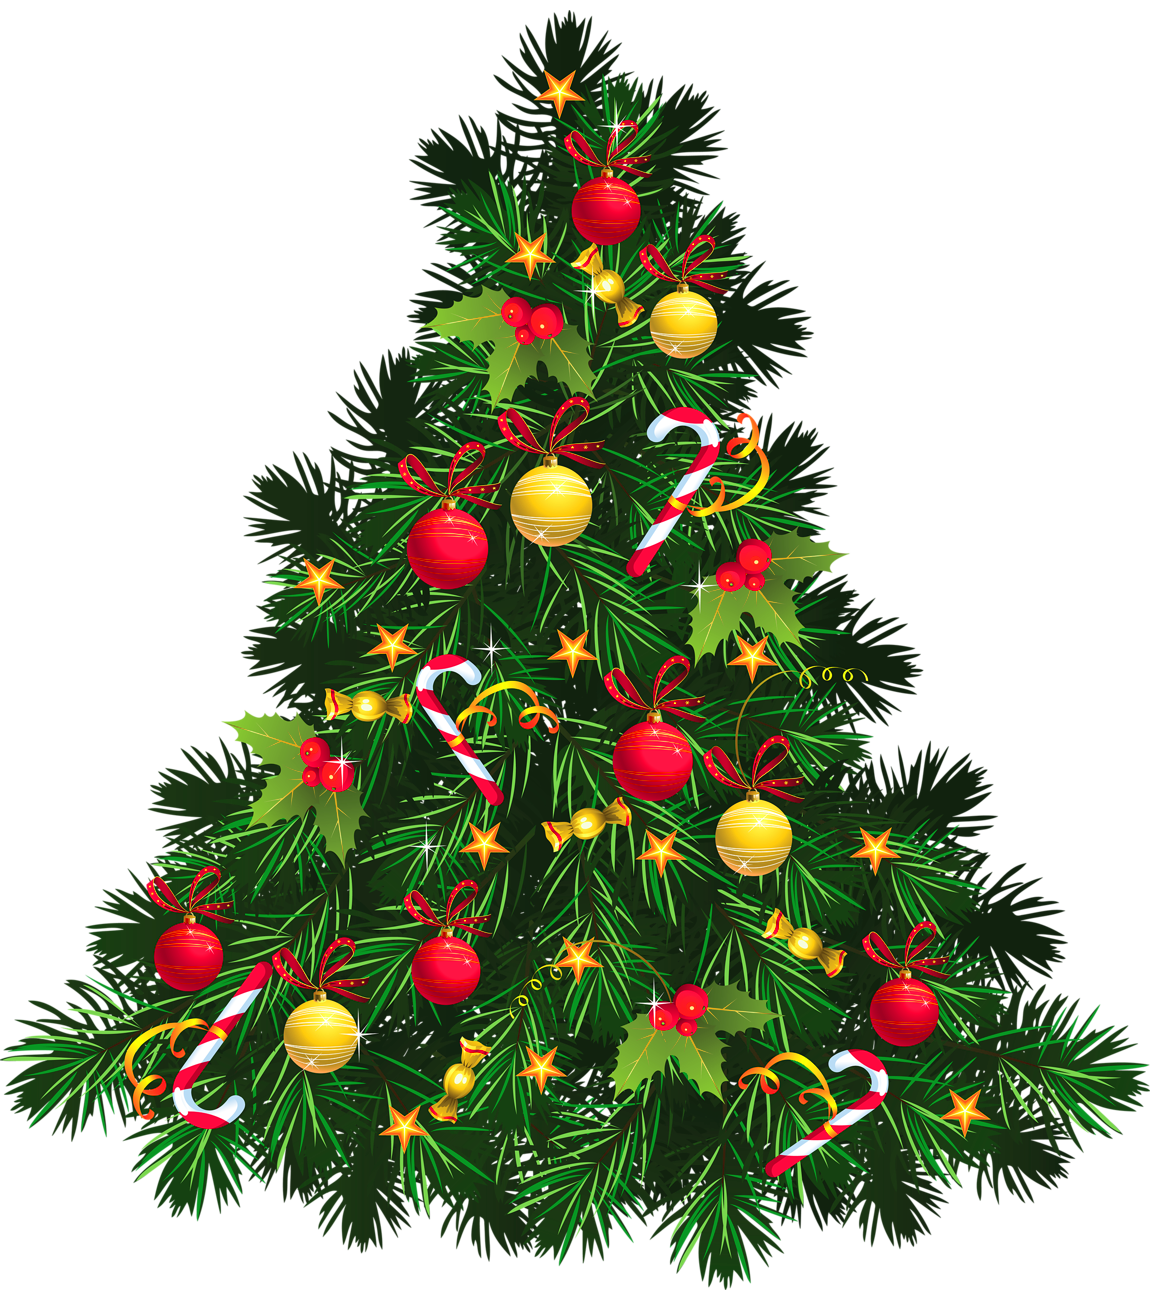 Transparent Christmas Tree with Ornaments PNG Picture.